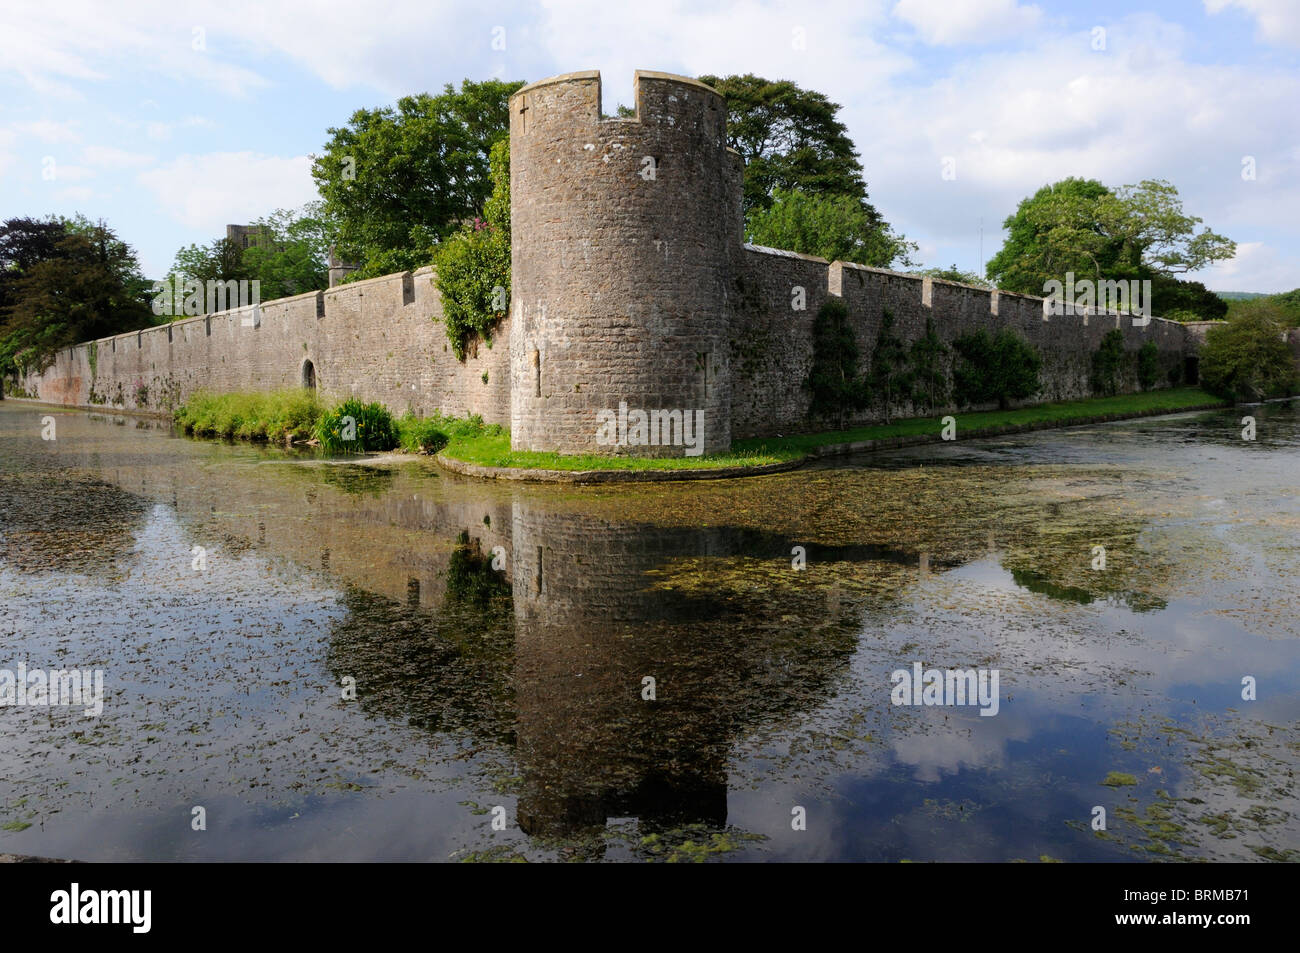 Outer wall and moat of the Bishop's Palace, Wells - Stock Image